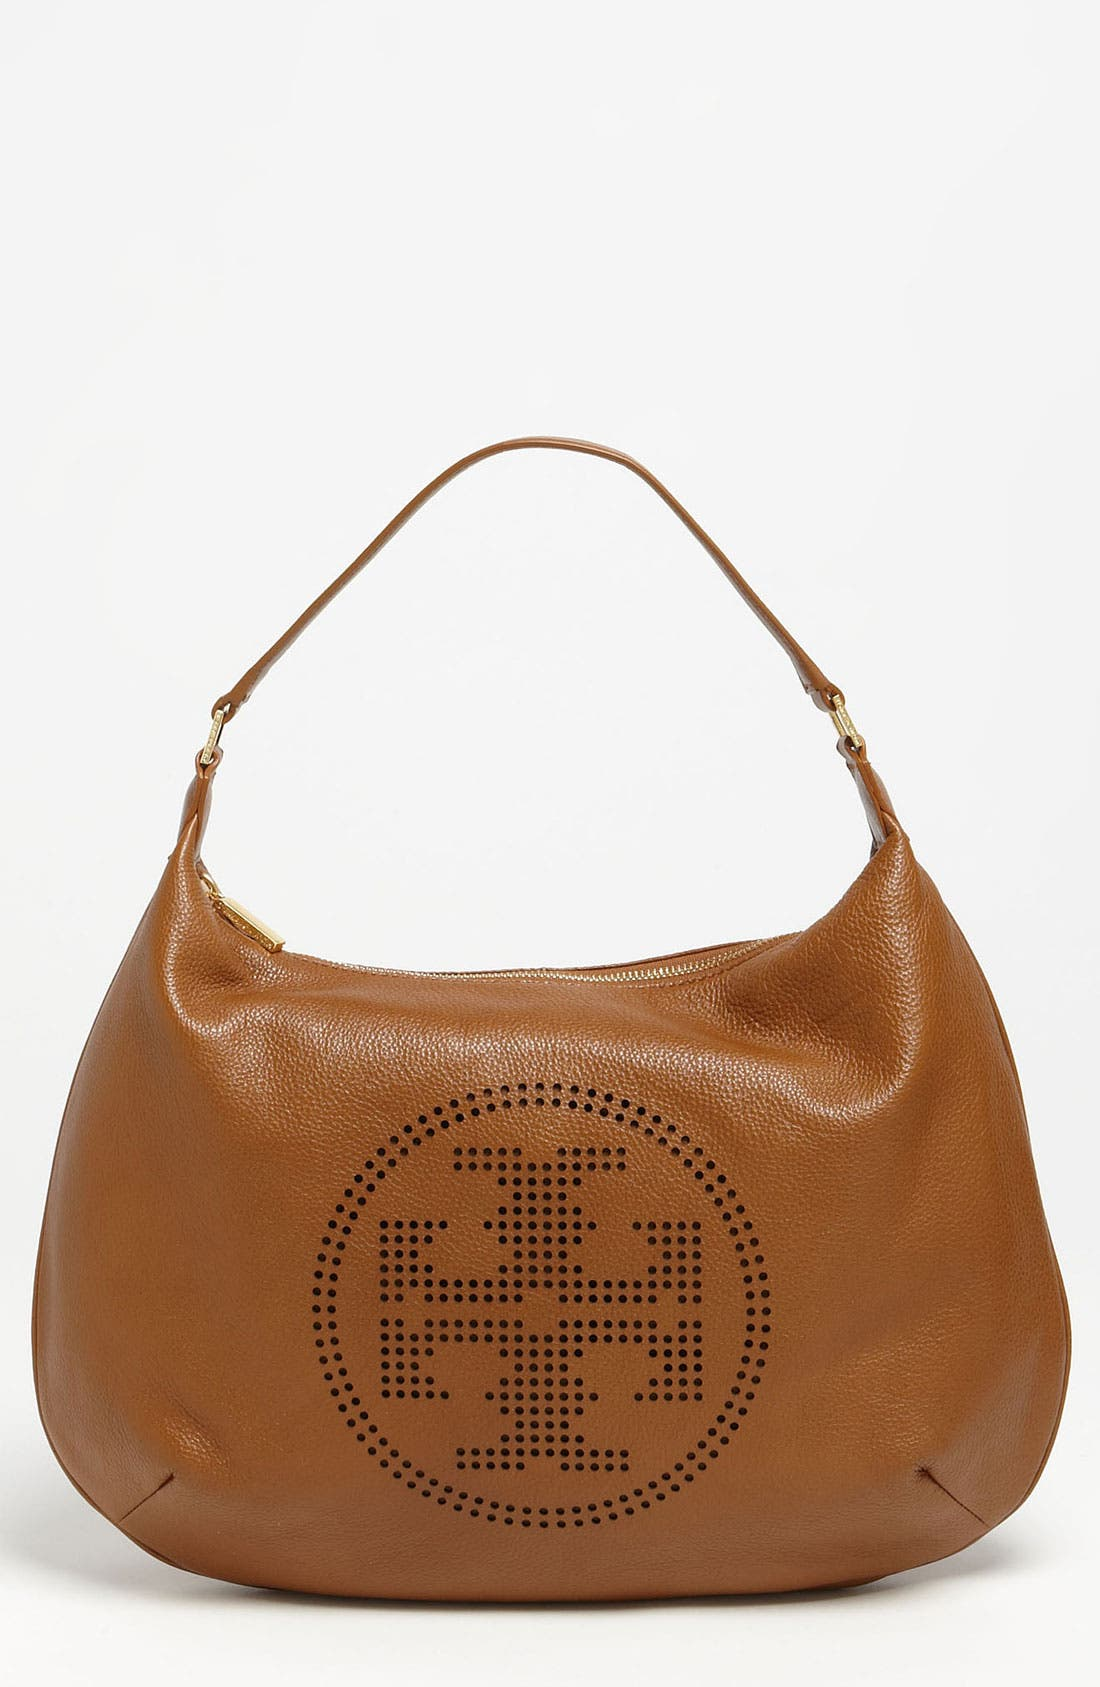 Alternate Image 1 Selected - Tory Burch Perforated Logo Hobo